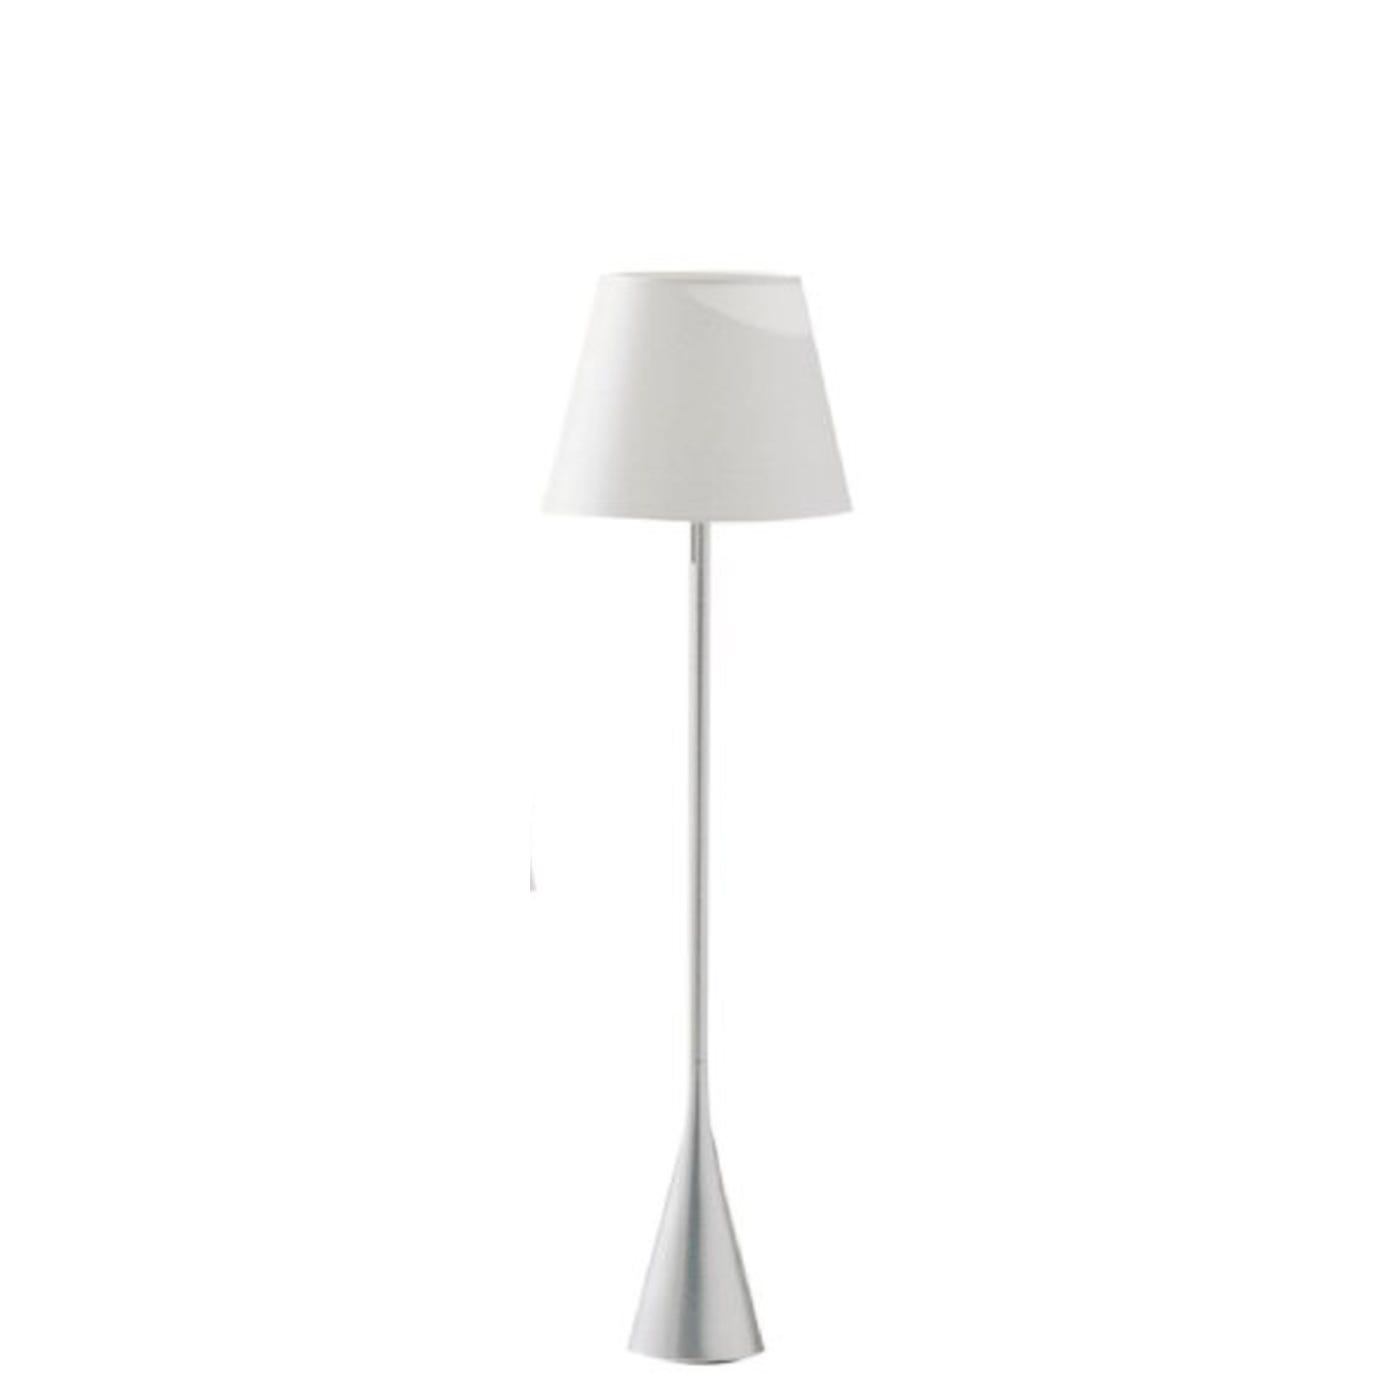 Pascal Mourage Table Lamp White Shade